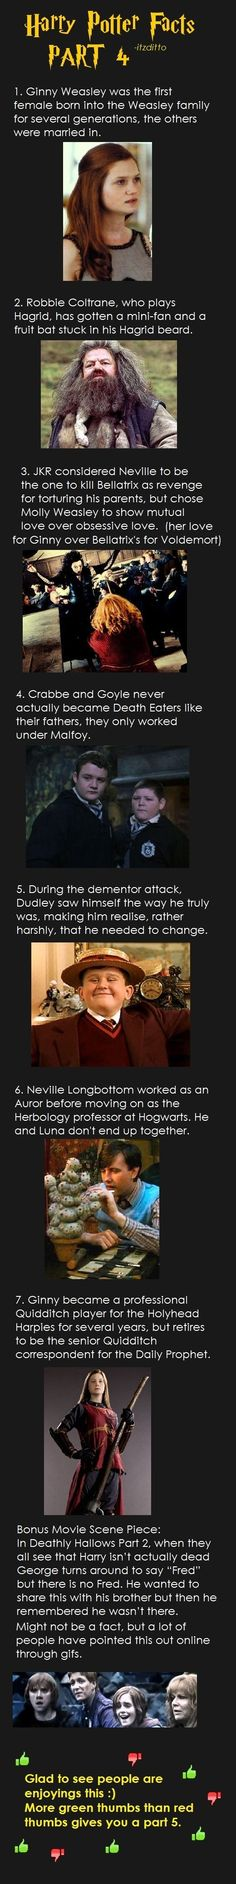 Harry Potter fun facts part 4.